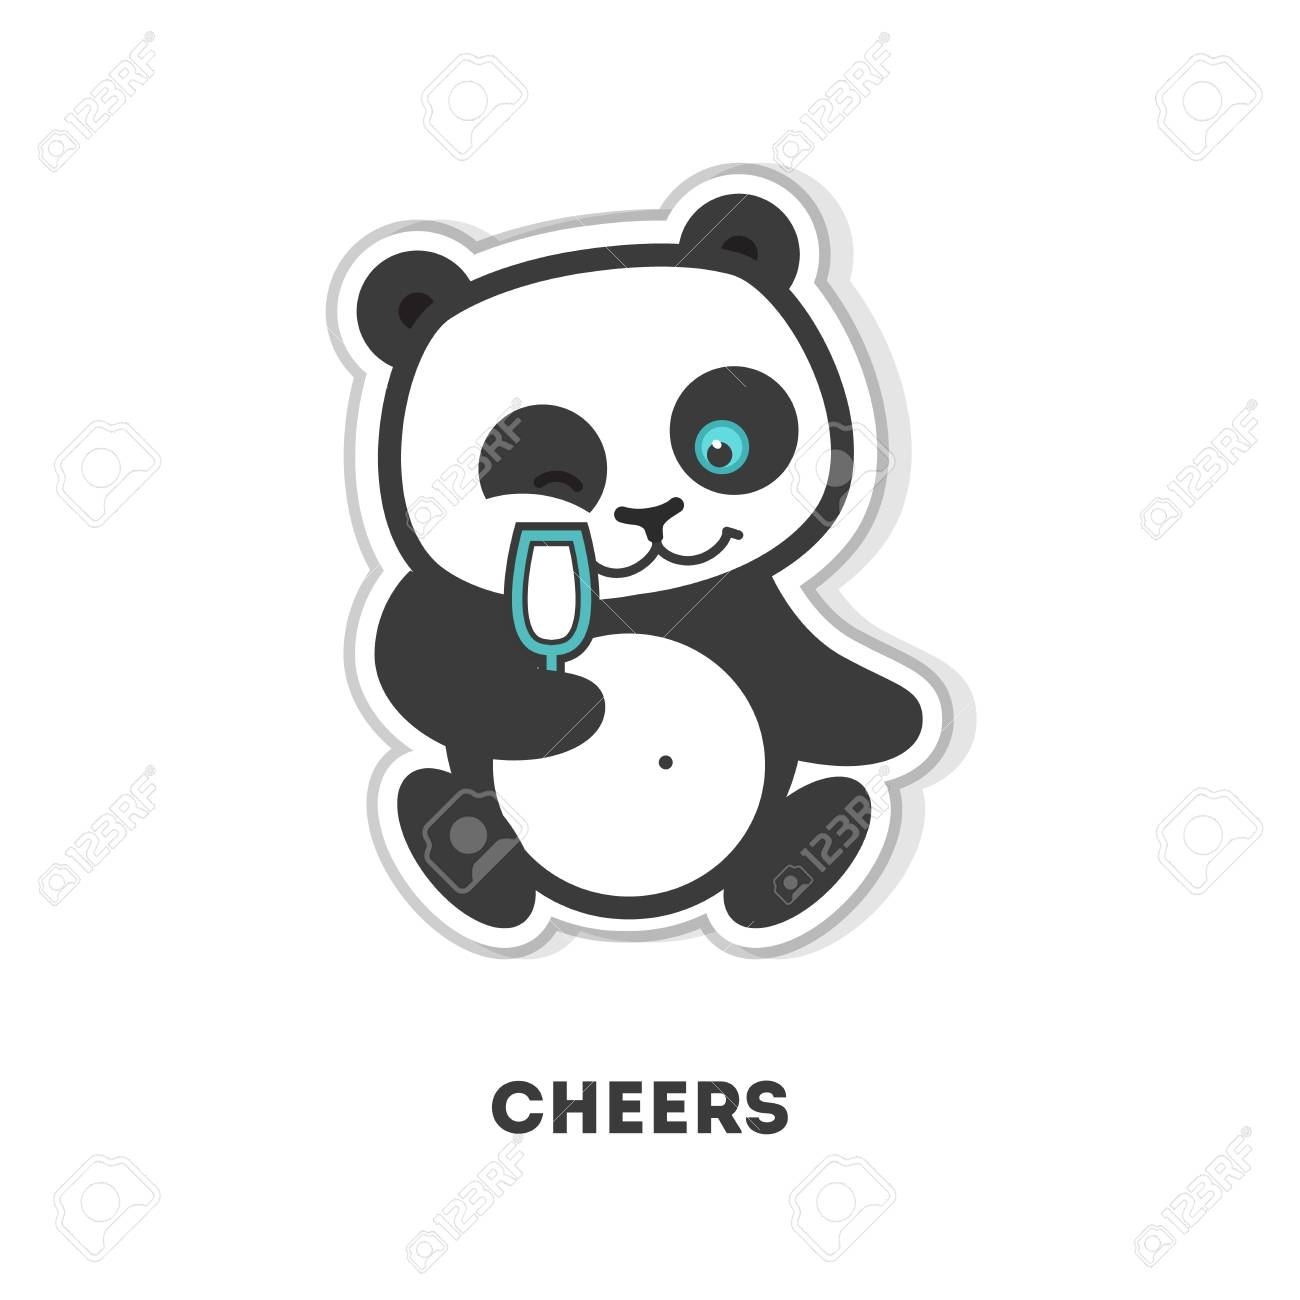 Cheers panda sticker isolated cute sticker on white background stock vector 76756913